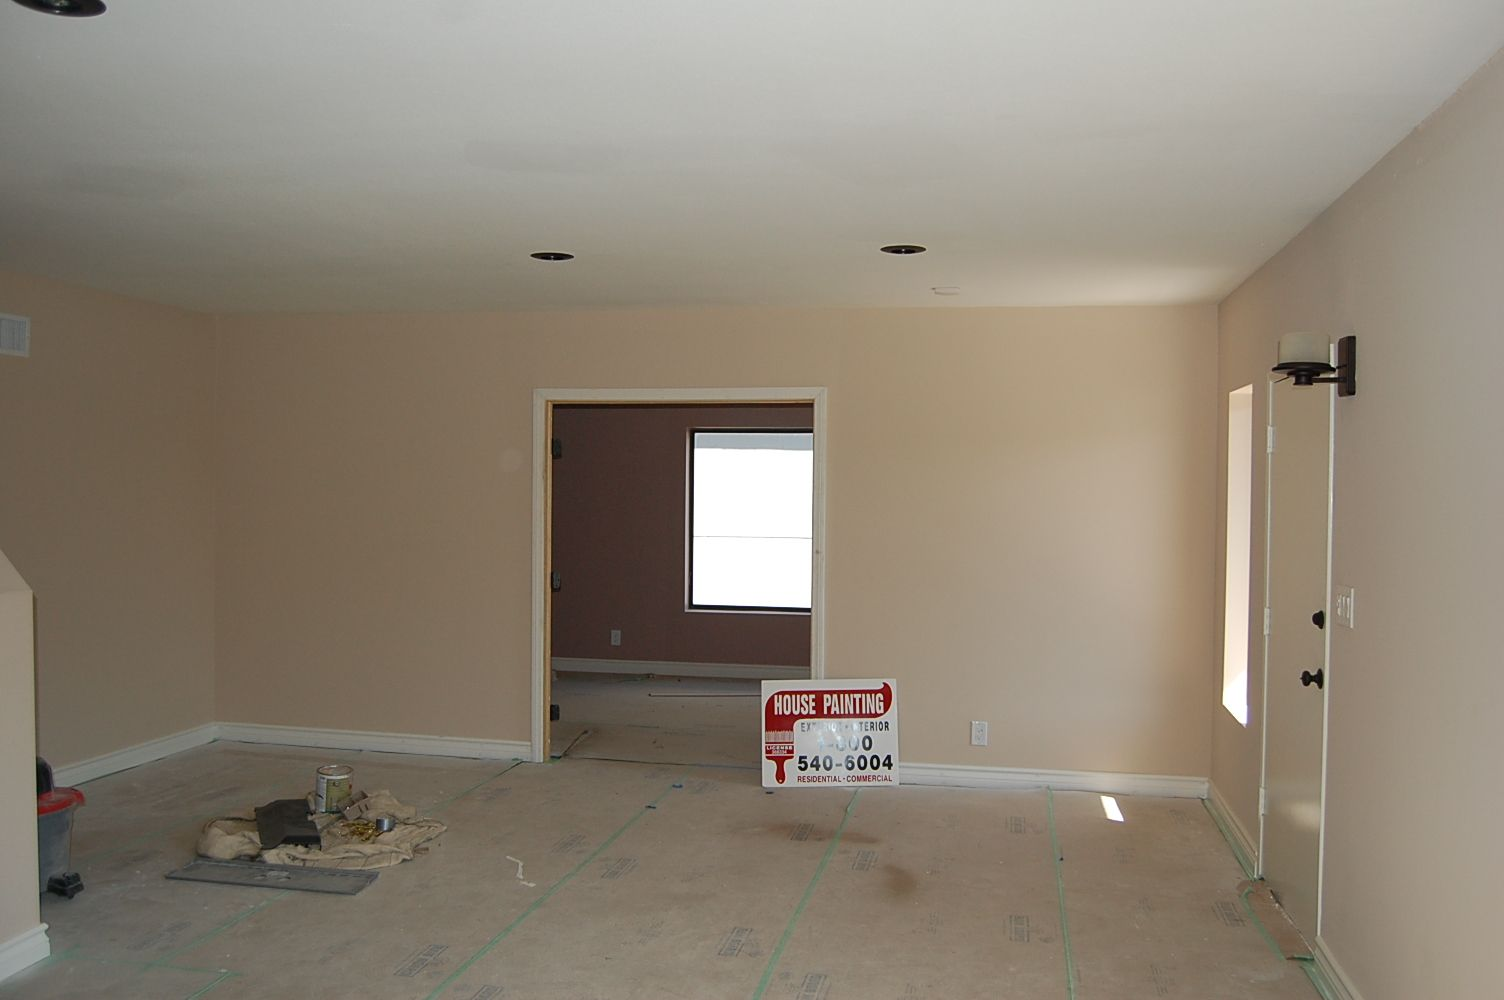 Interior house painting colors - Master Bedroom Interior Painting Looking For Professional House Painting In Stamford Ct